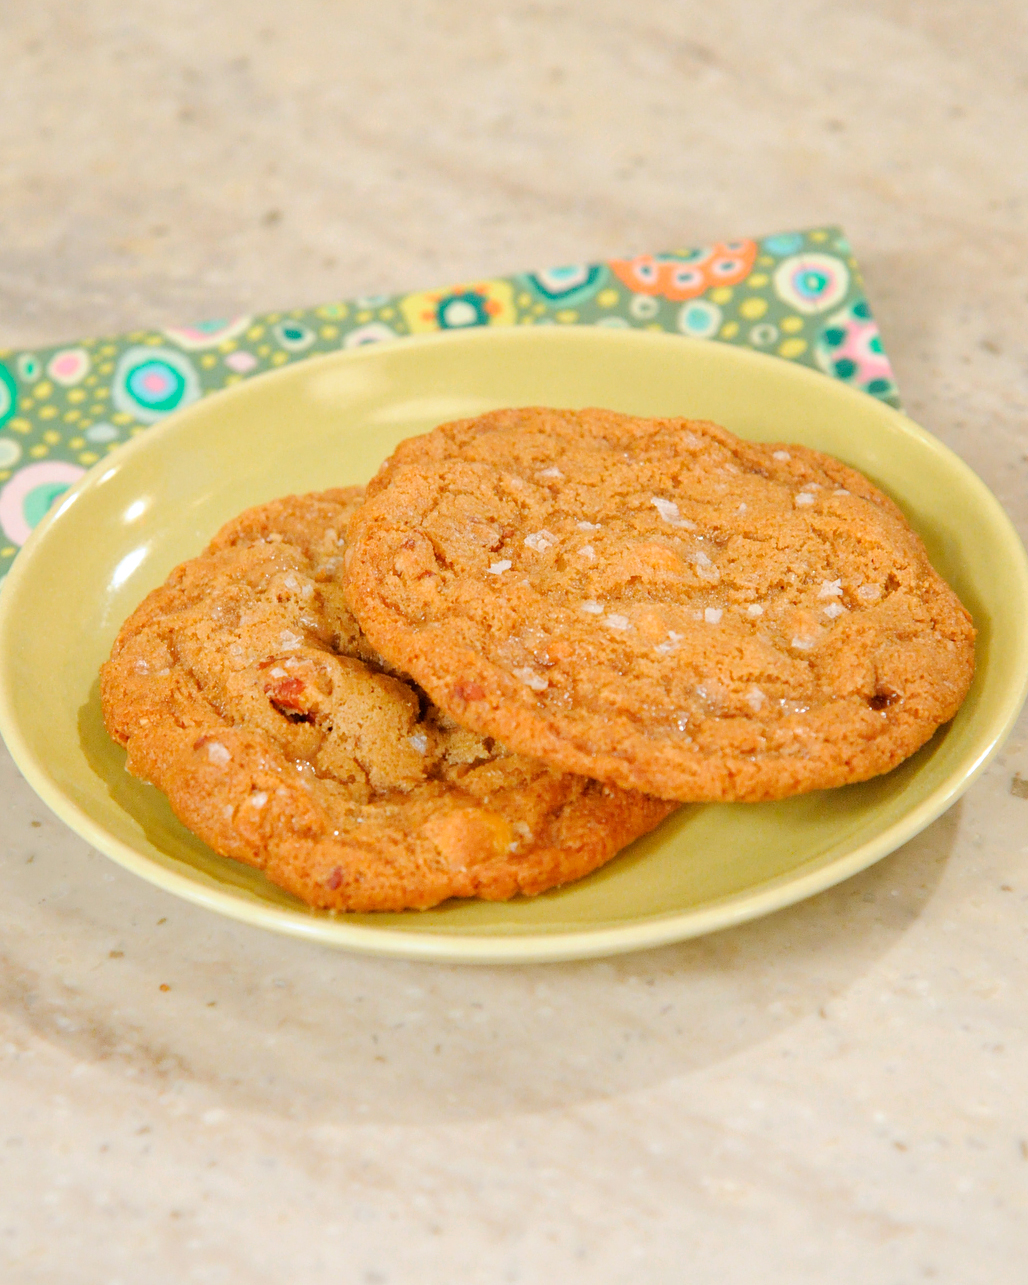 salty-butterscotch-cookies-mslb7047.jpg